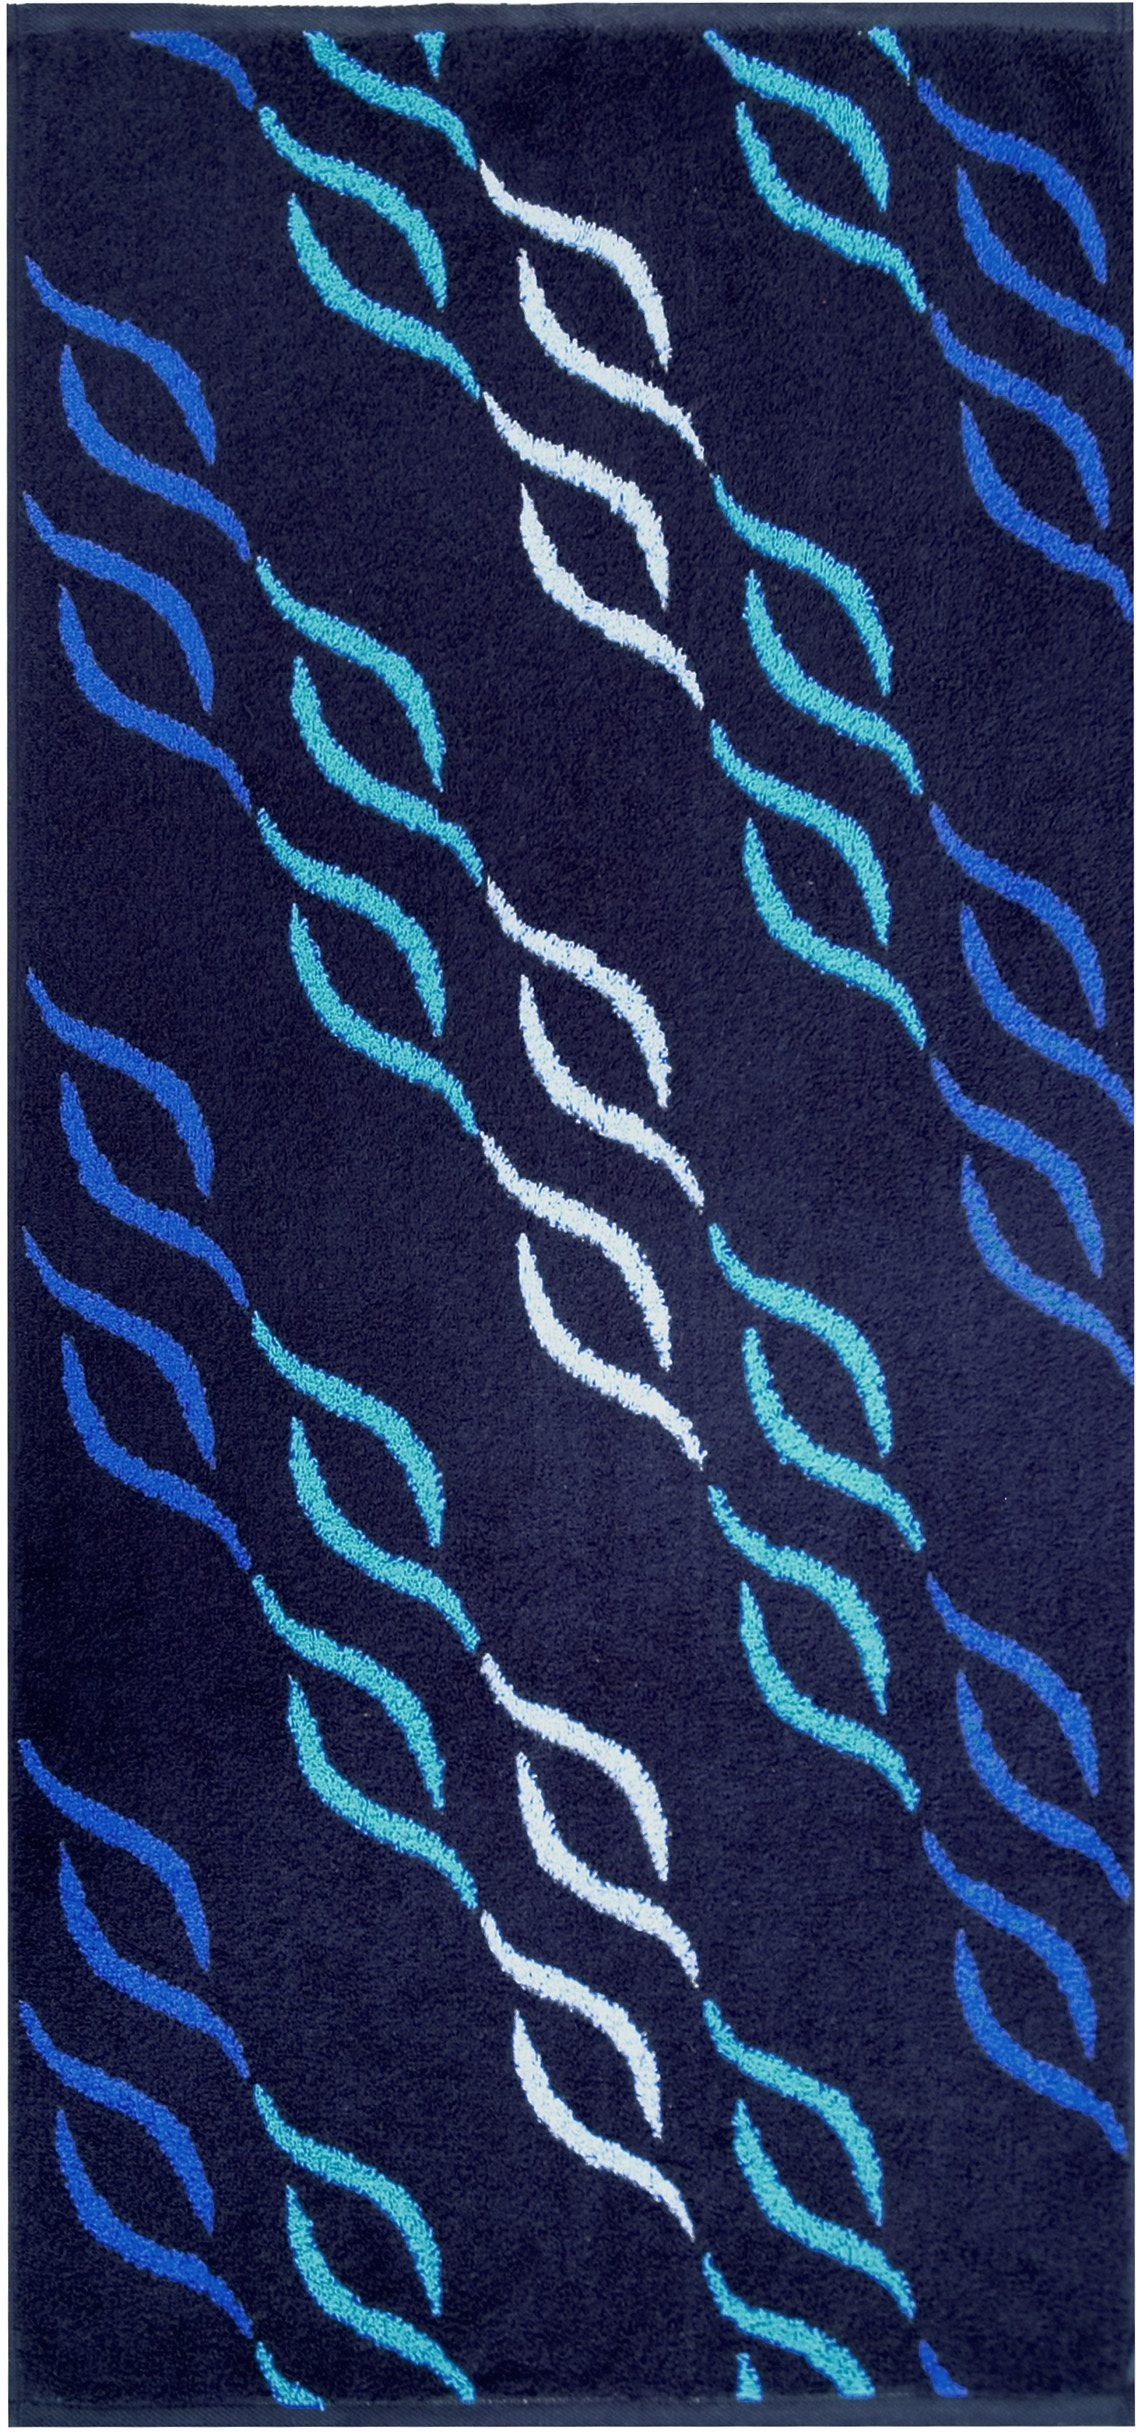 Badetuch, Dyckhoff, »Wave Jacquard«, mit Wellenmuster